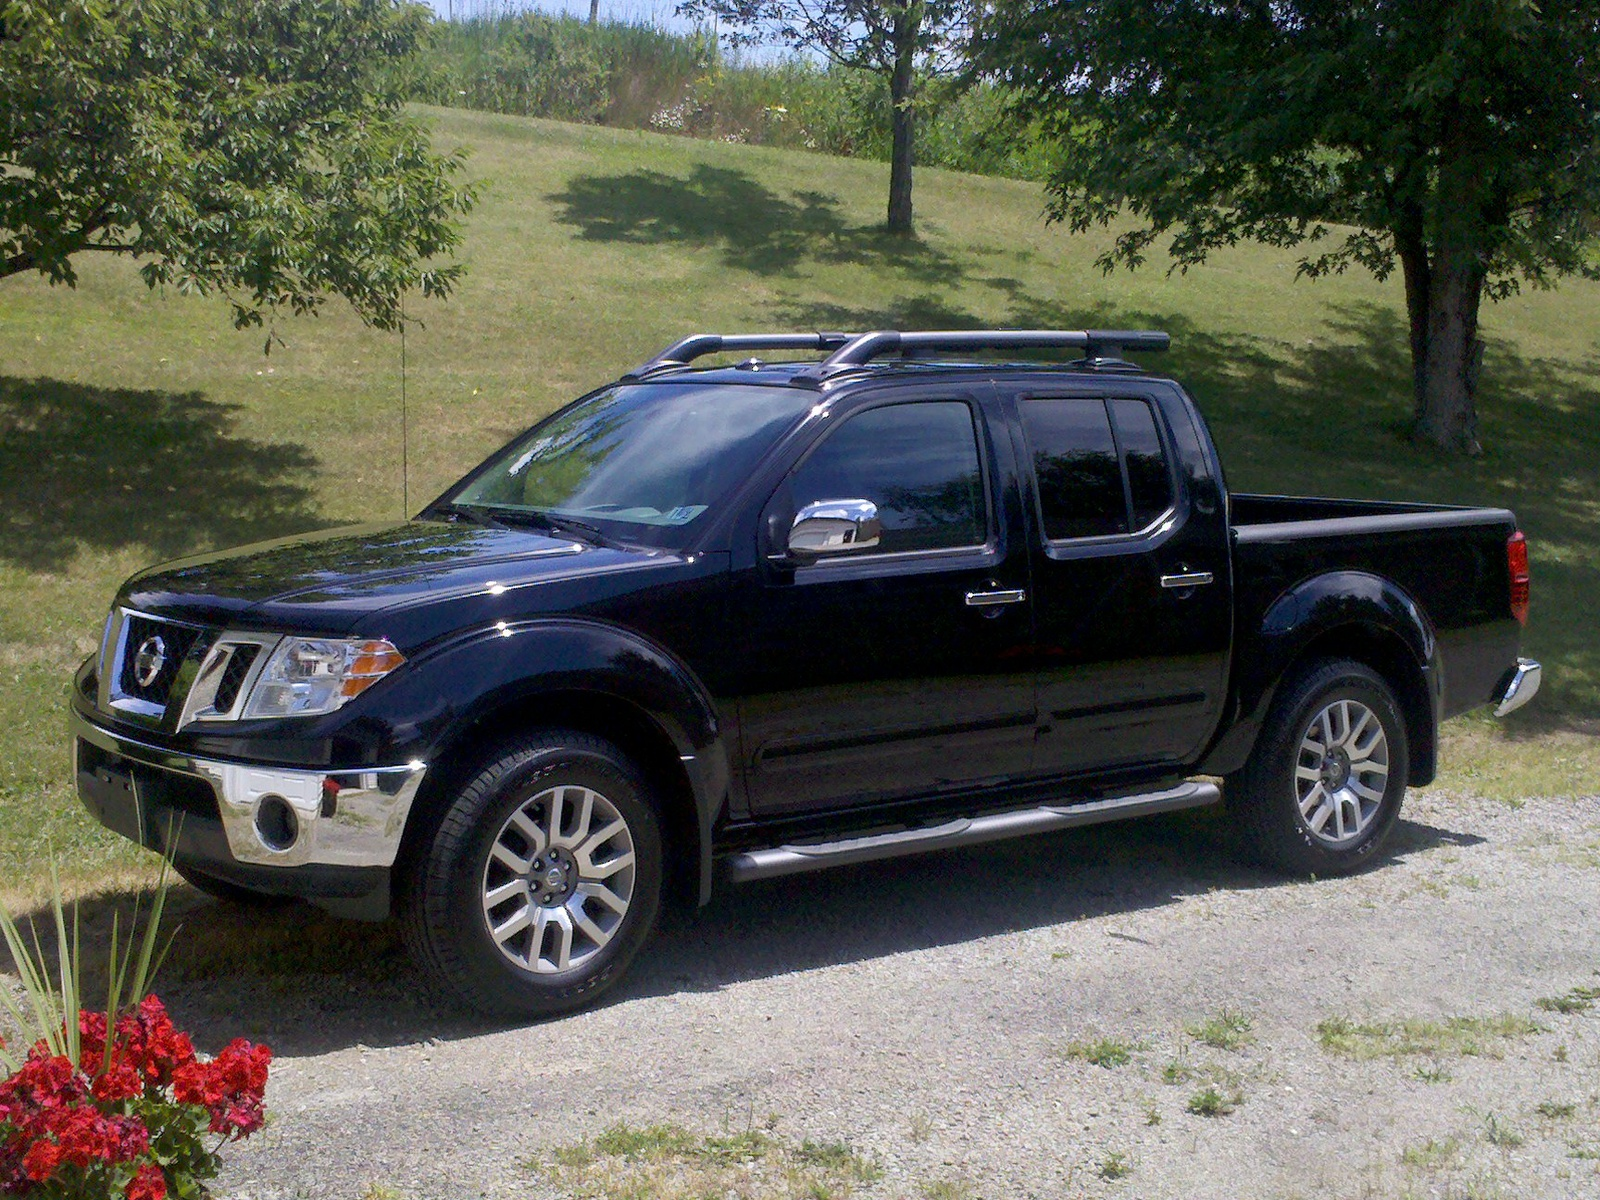 2009 nissan frontier black images hd cars wallpaper nissan frontier information and photos momentcar nissan frontier le 5 nissan frontier le 5 vanachro images vanachro Choice Image